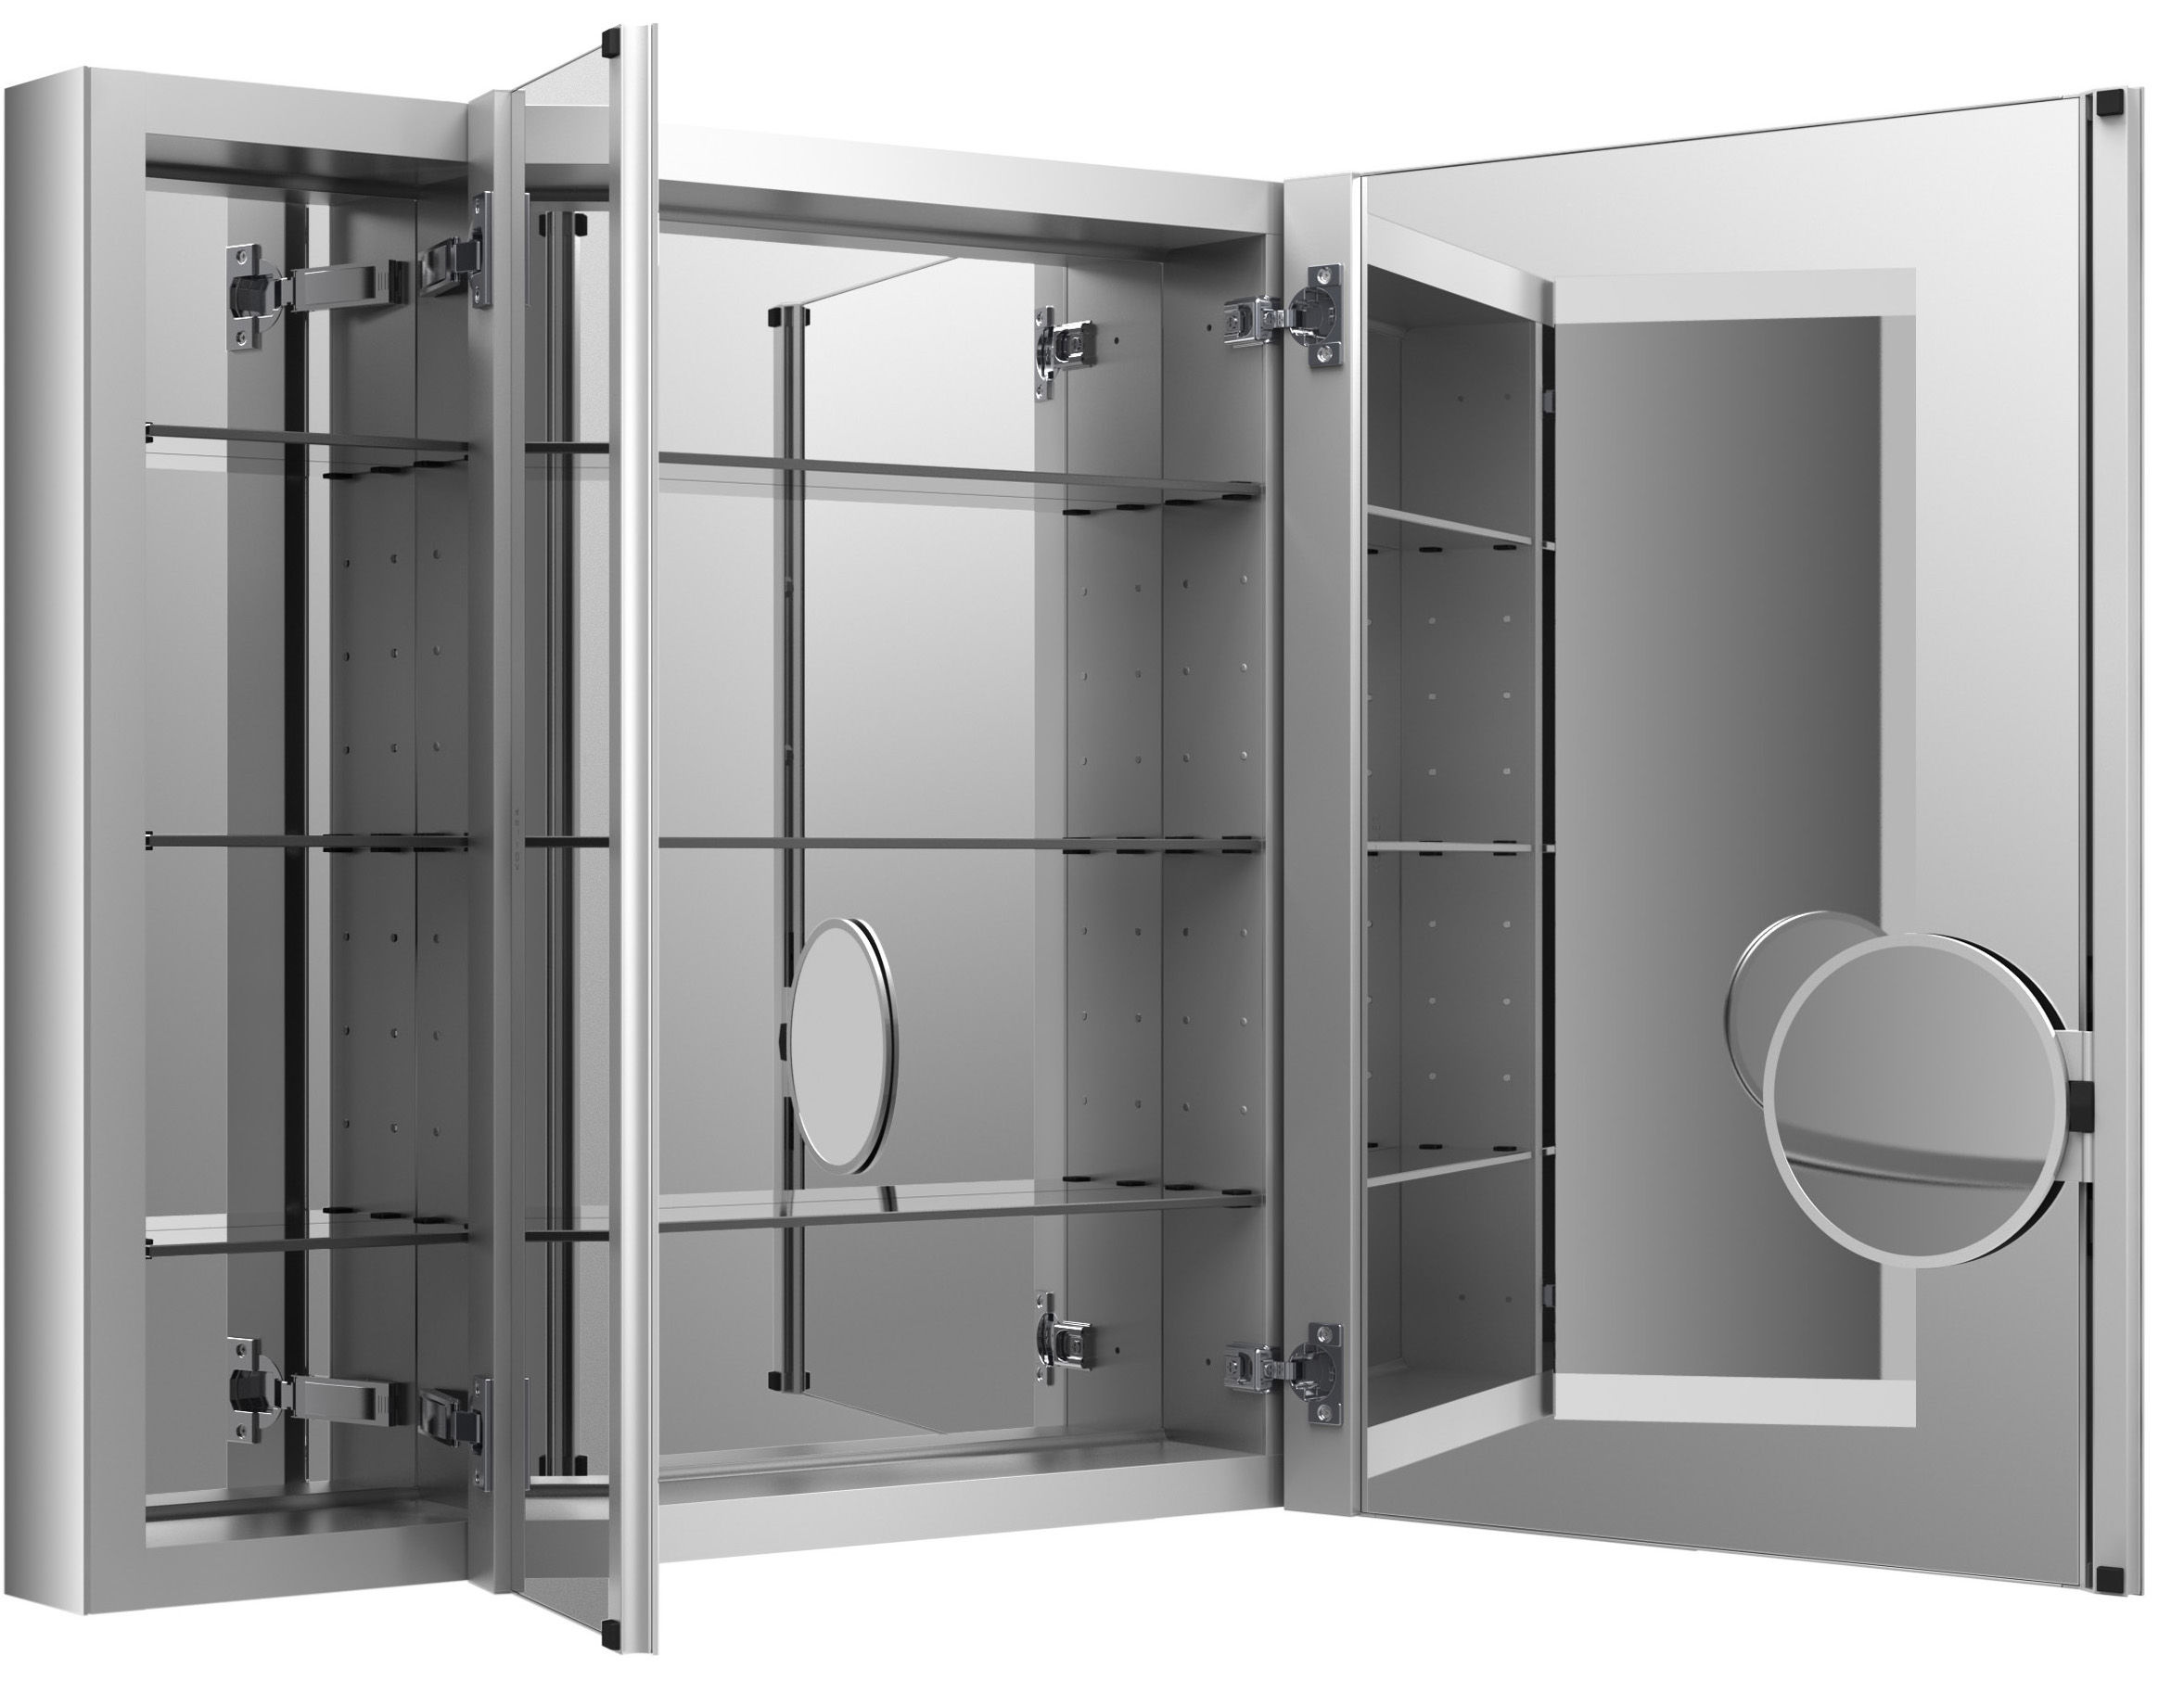 Kohler k 99011 na na 40 x 30 triple door reversible hinge kohler k 99011 na na 40 x 30 triple door reversible hinge frameless mirrored medicine cabinet from the verdera collection faucetdirect vtopaller Gallery